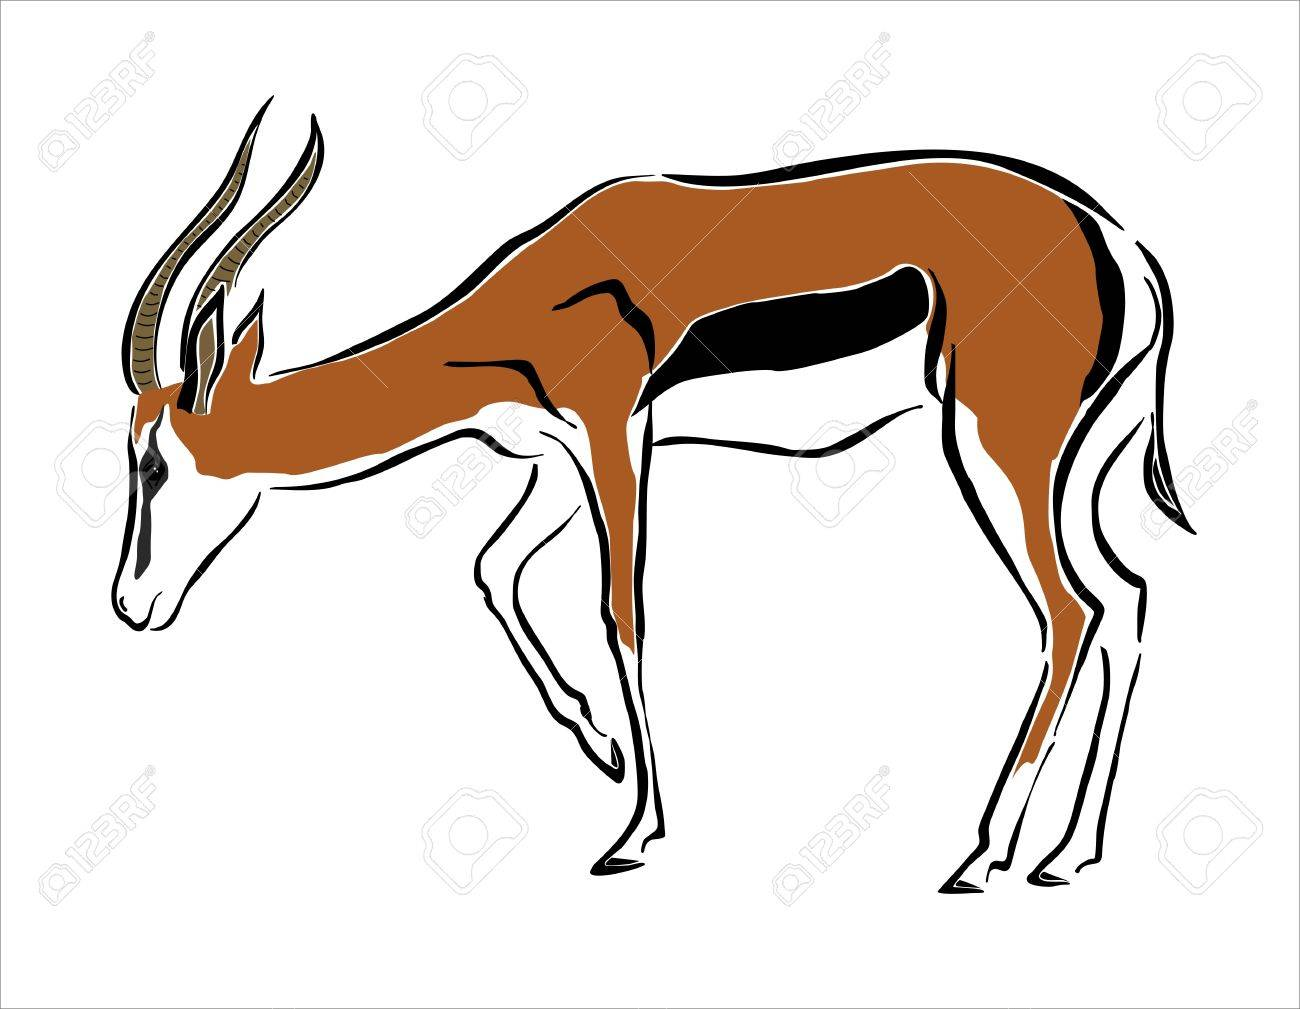 Drawing Of An Antelope Royalty Free Cliparts, Vectors, And Stock ...